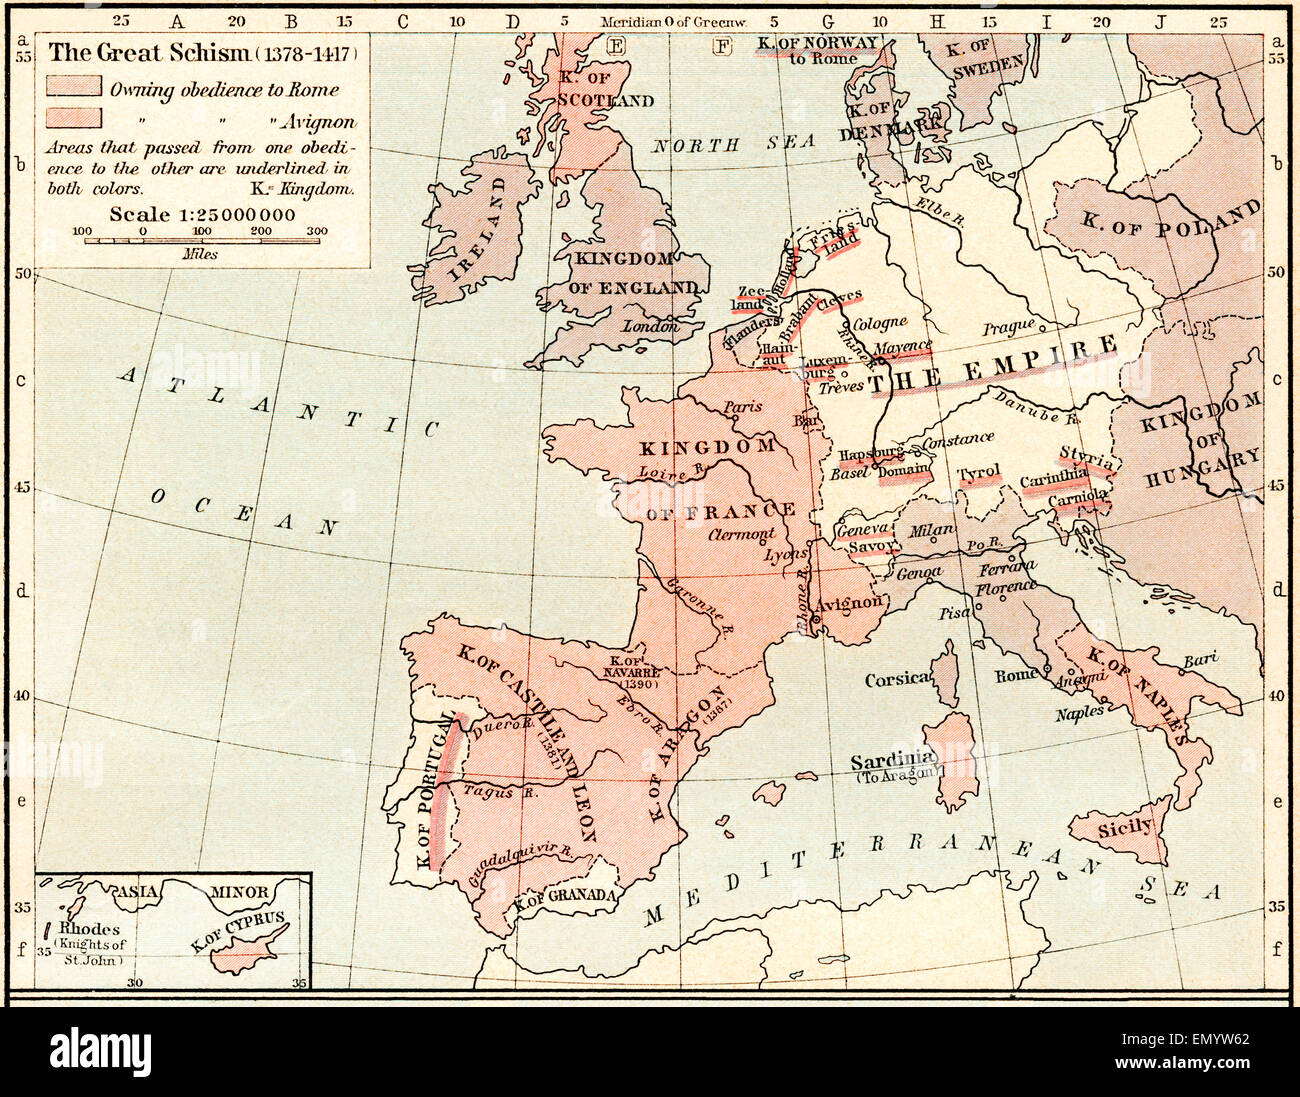 Map of The Western Schism, or Papal or Great Schism, 1378 - 1417, showing  allegiance of European countries.